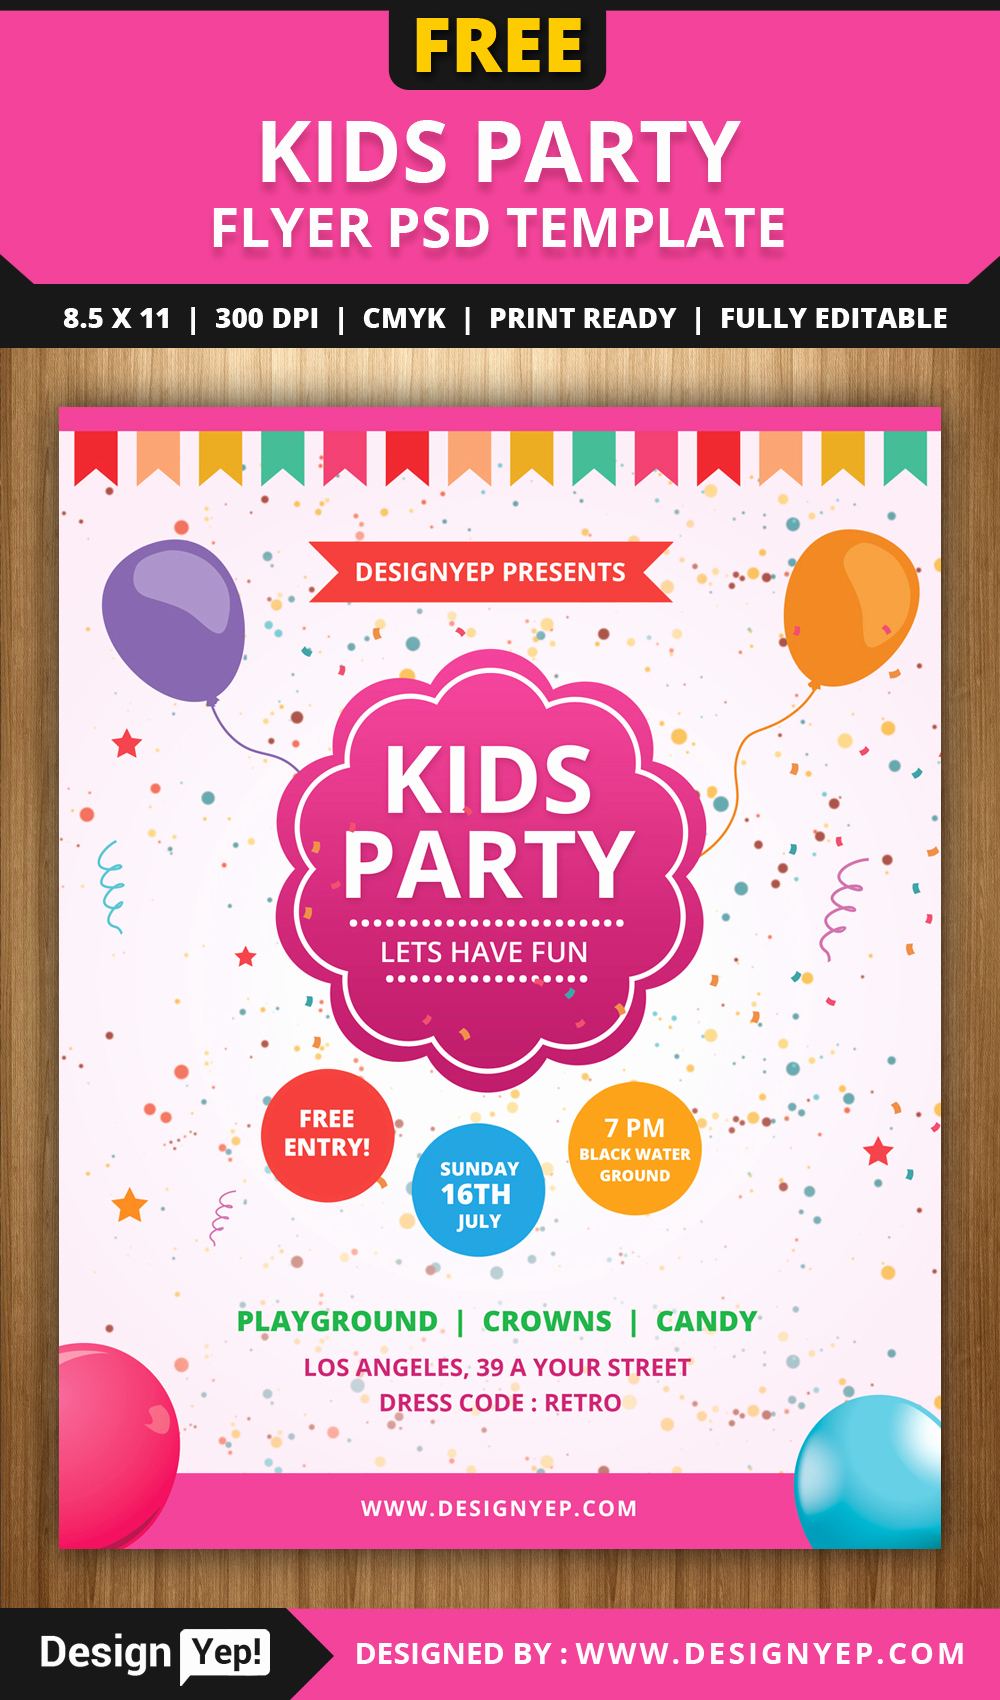 Free Flyers Templates Downloads Fresh Free Kids Party Flyer Psd Template Designyep